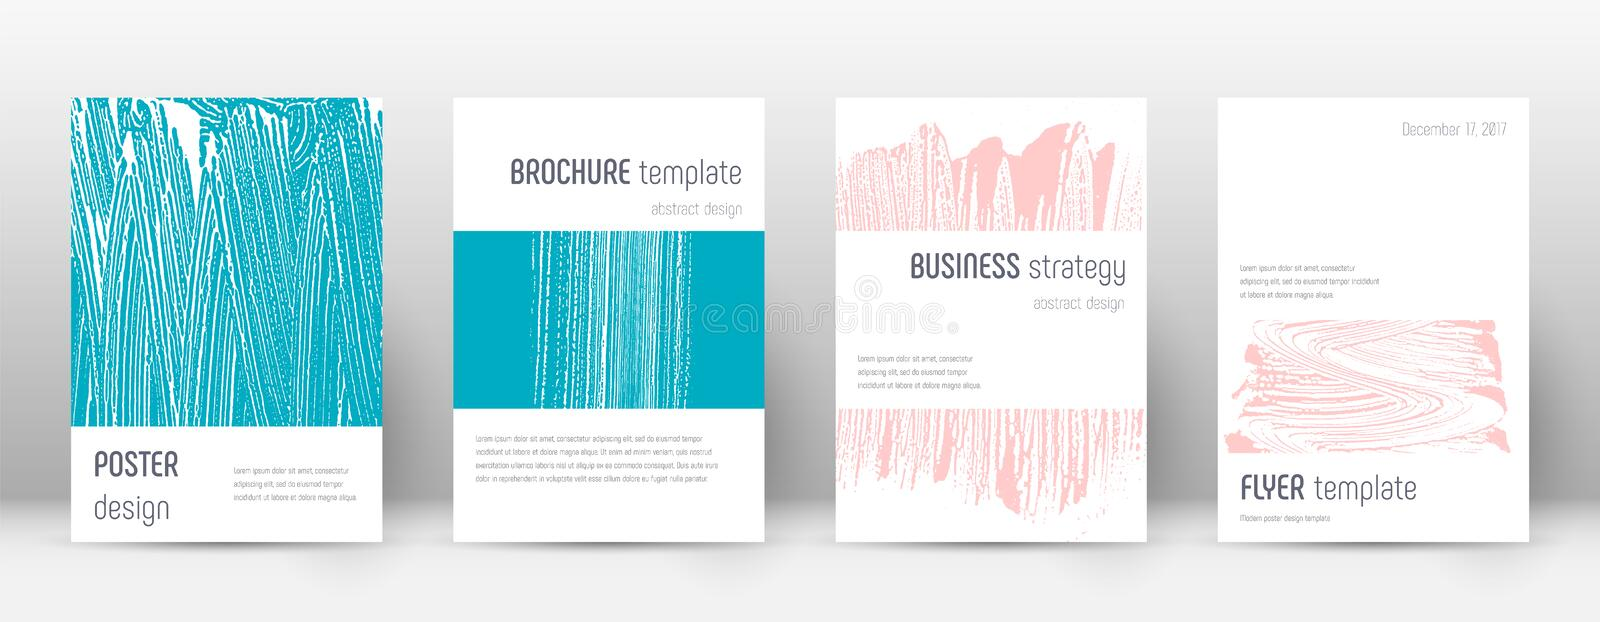 Cover page design template. Minimalistic brochure. Layout. Classic trendy abstract cover page. Pink and blue grunge texture background. Sublime poster vector illustration